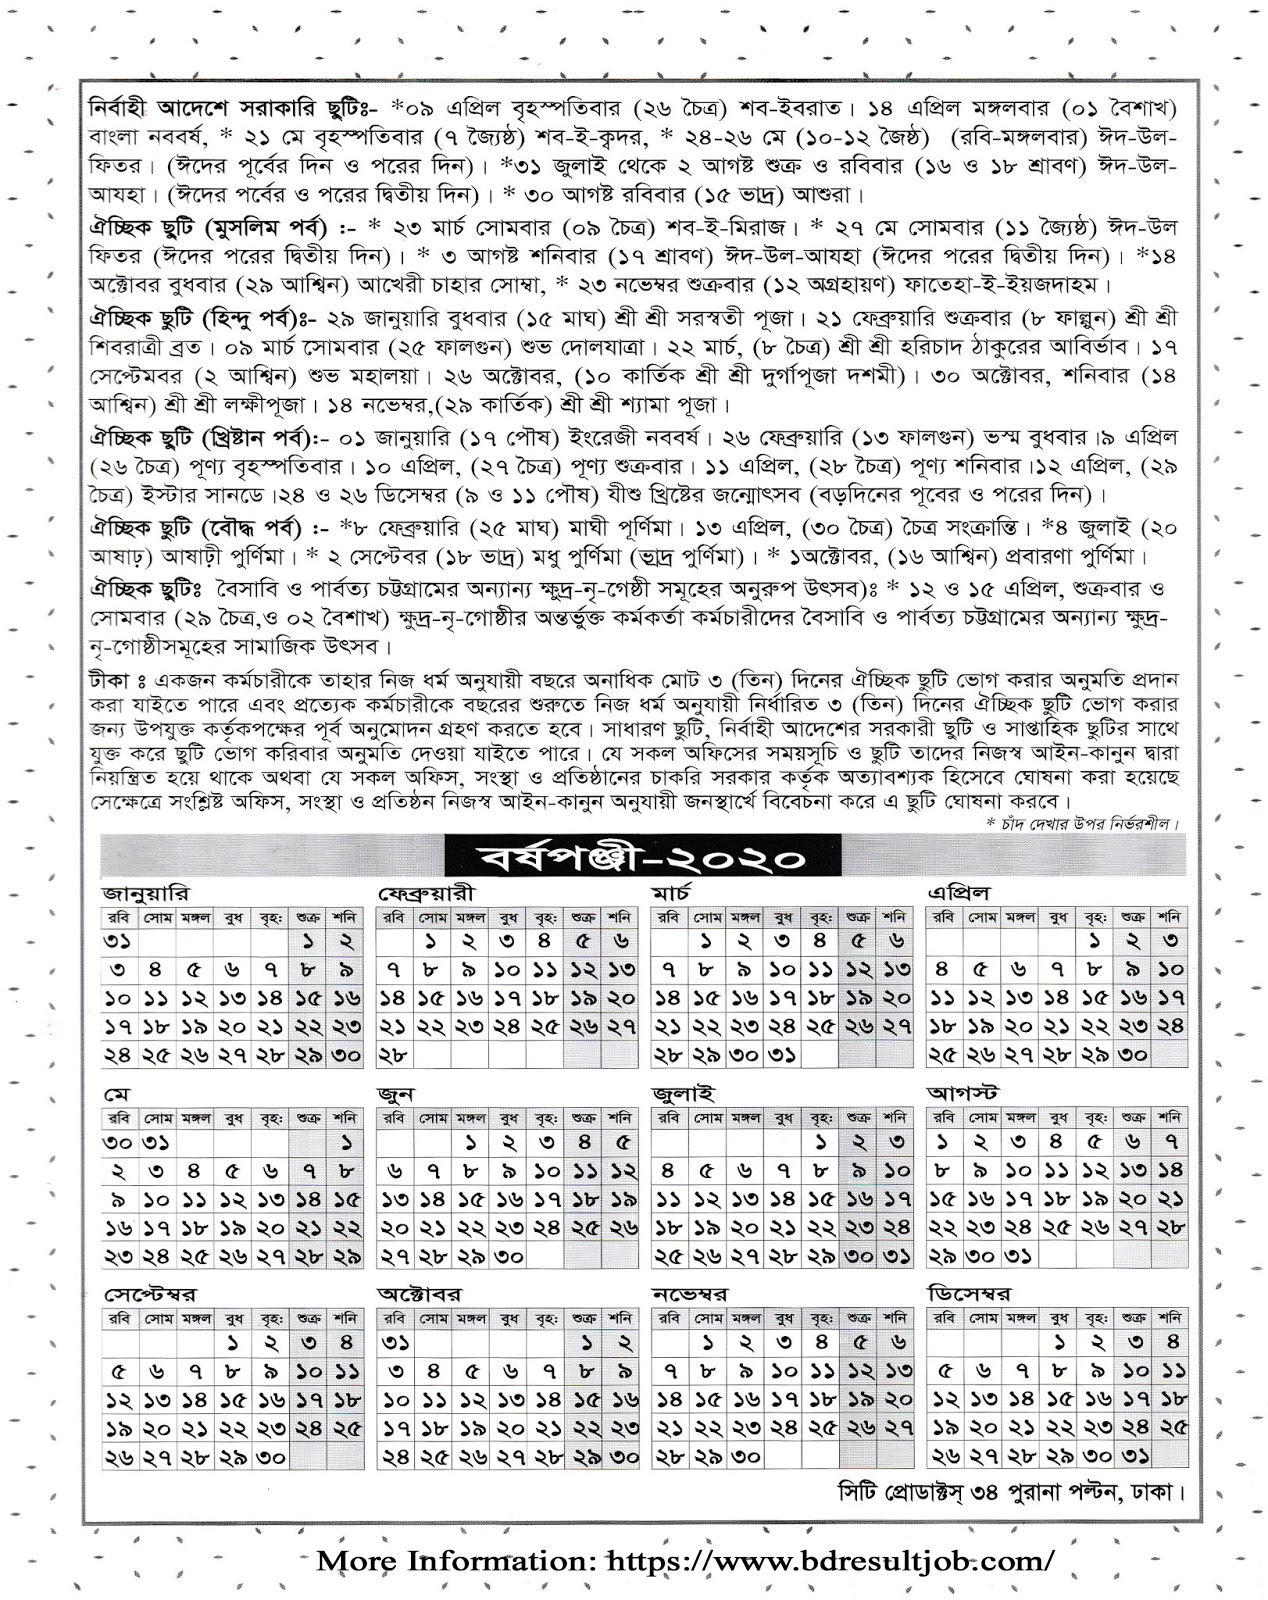 Bangladesh Government and Non-Government Primary School Holiday 2020